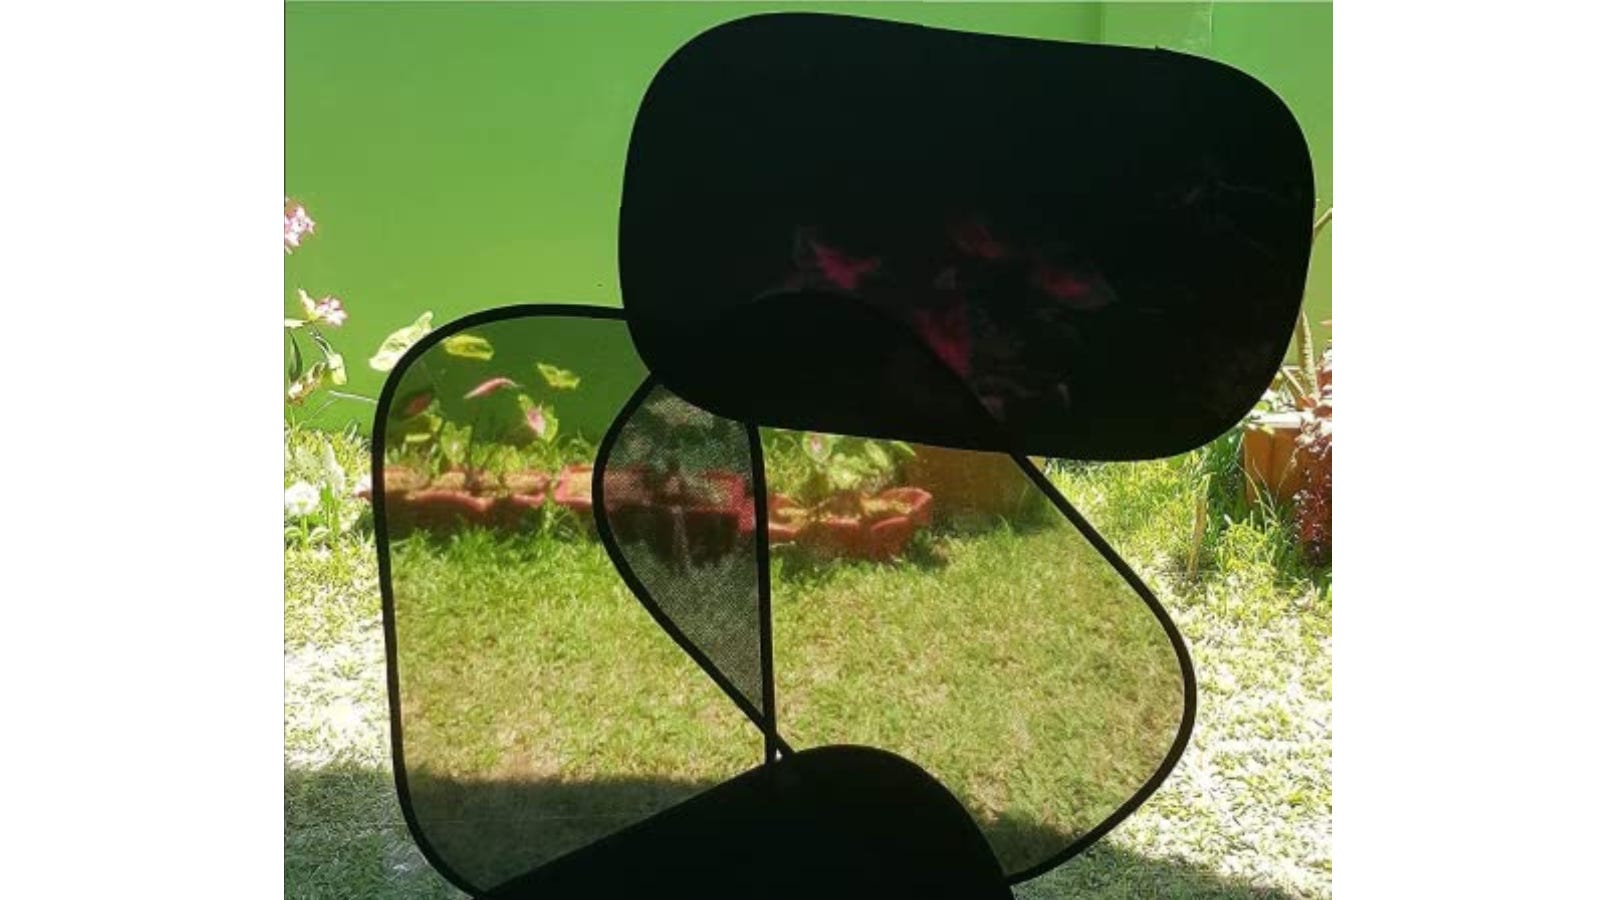 Set of four rectangular sunshades on a large window with a grassy yard in the background.